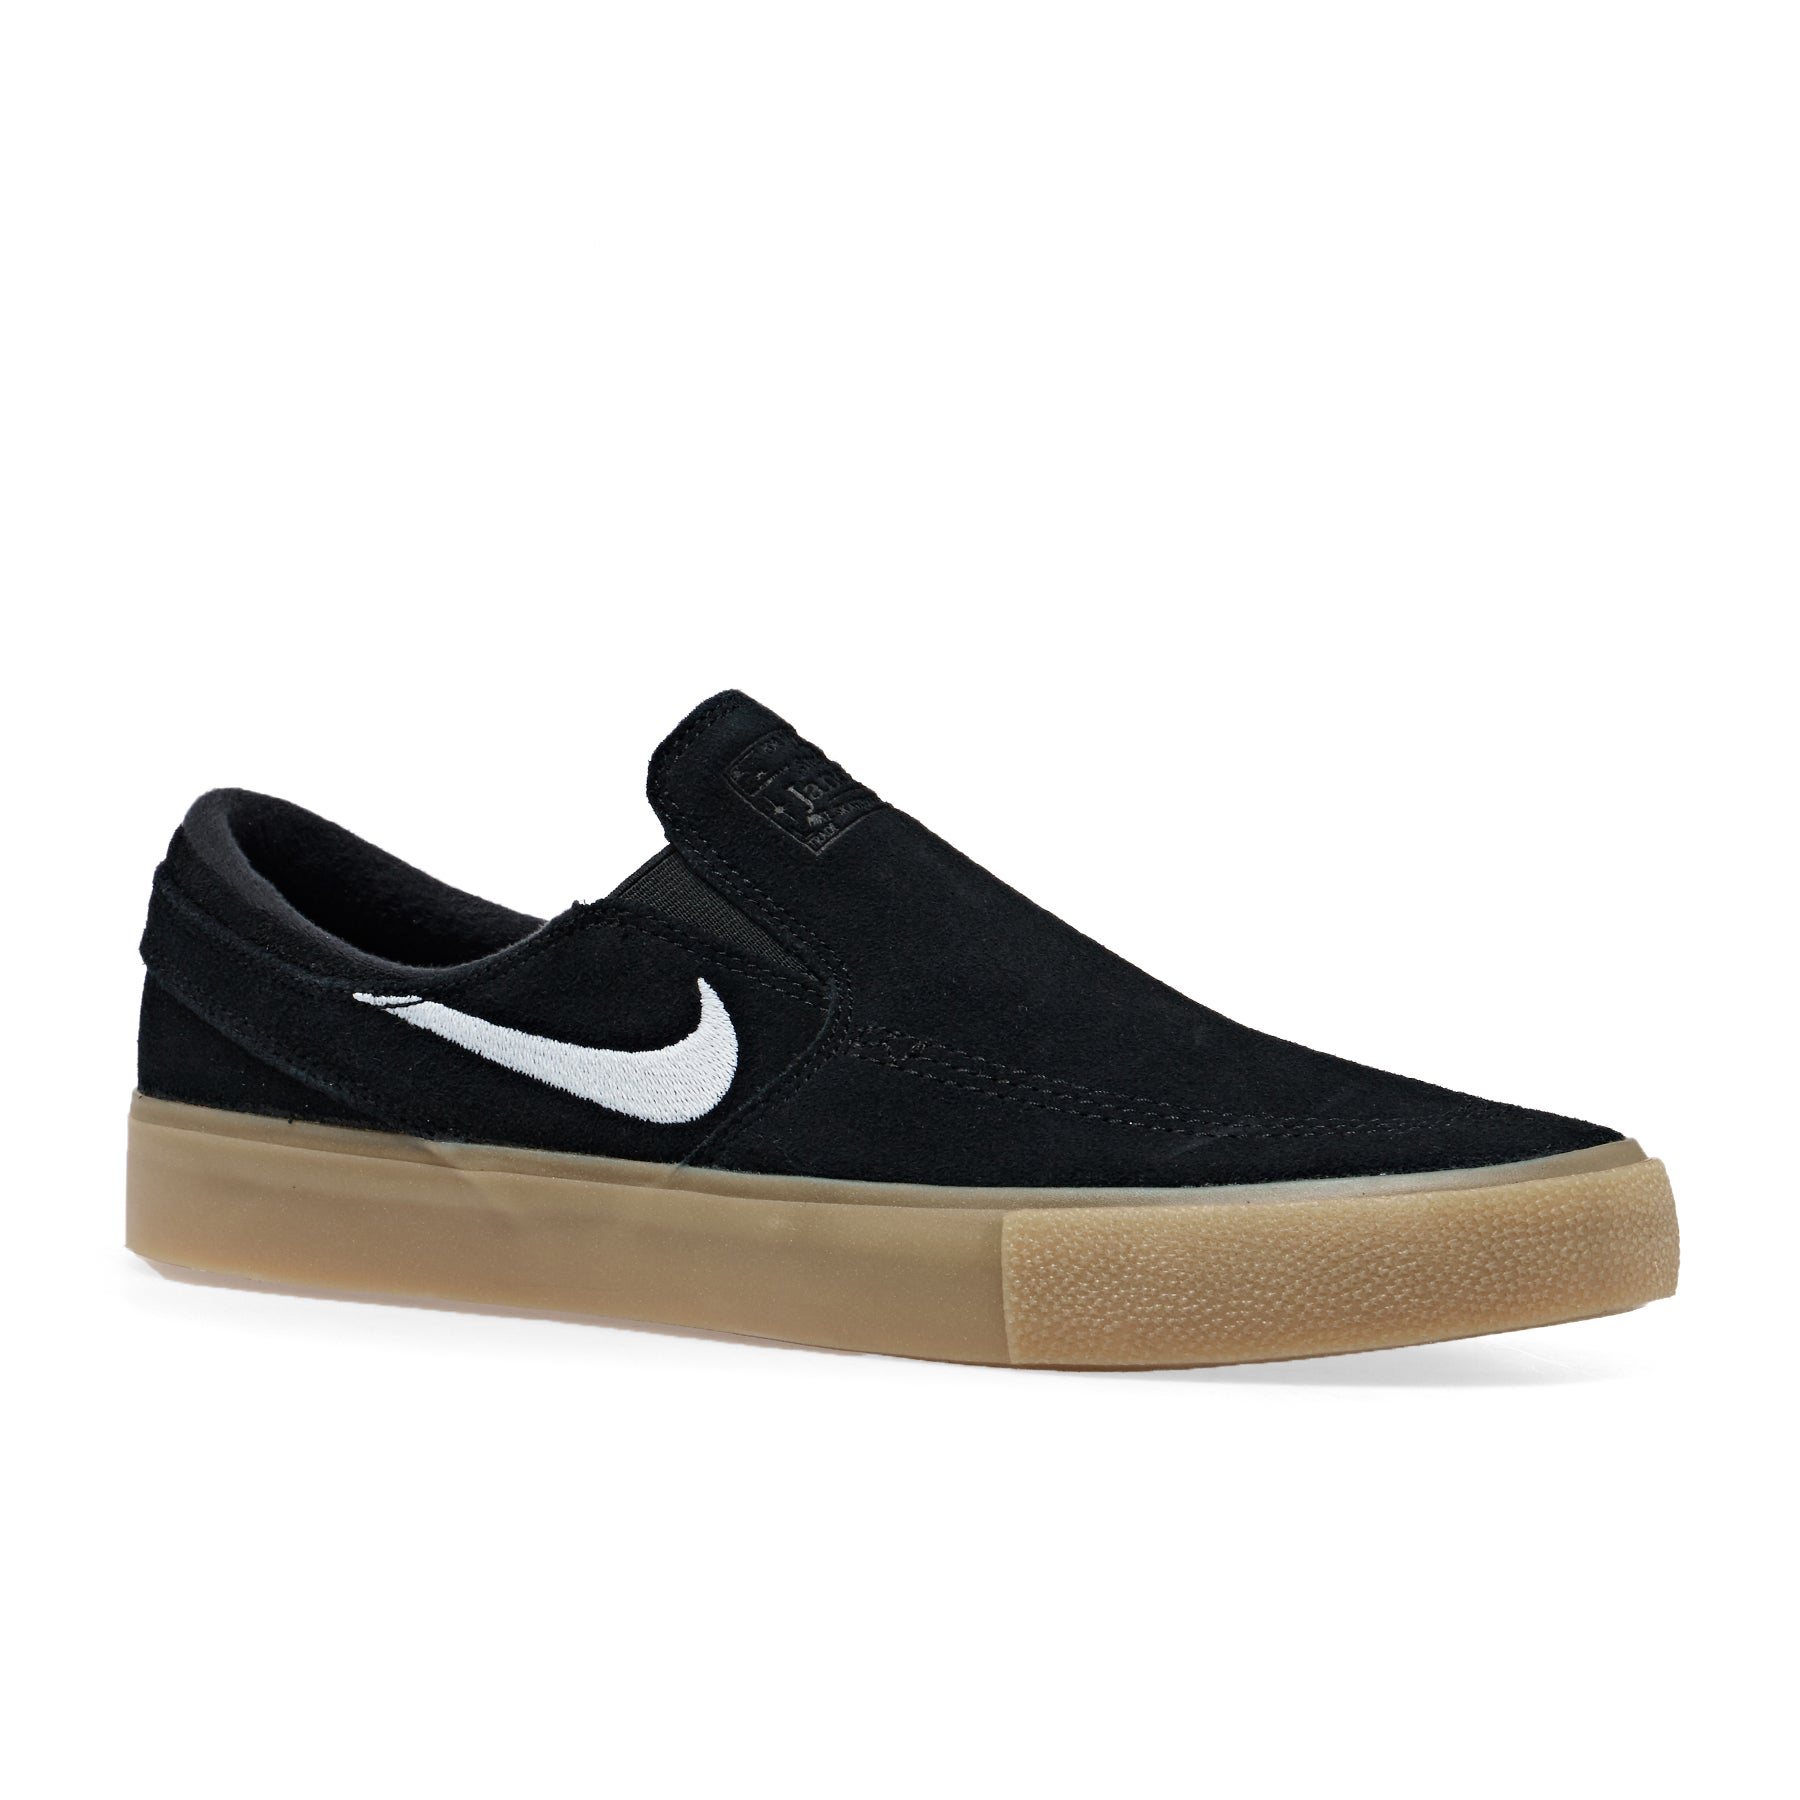 Mocassins Nike SB Zoom Janoski Rm - Black White Gum Brown